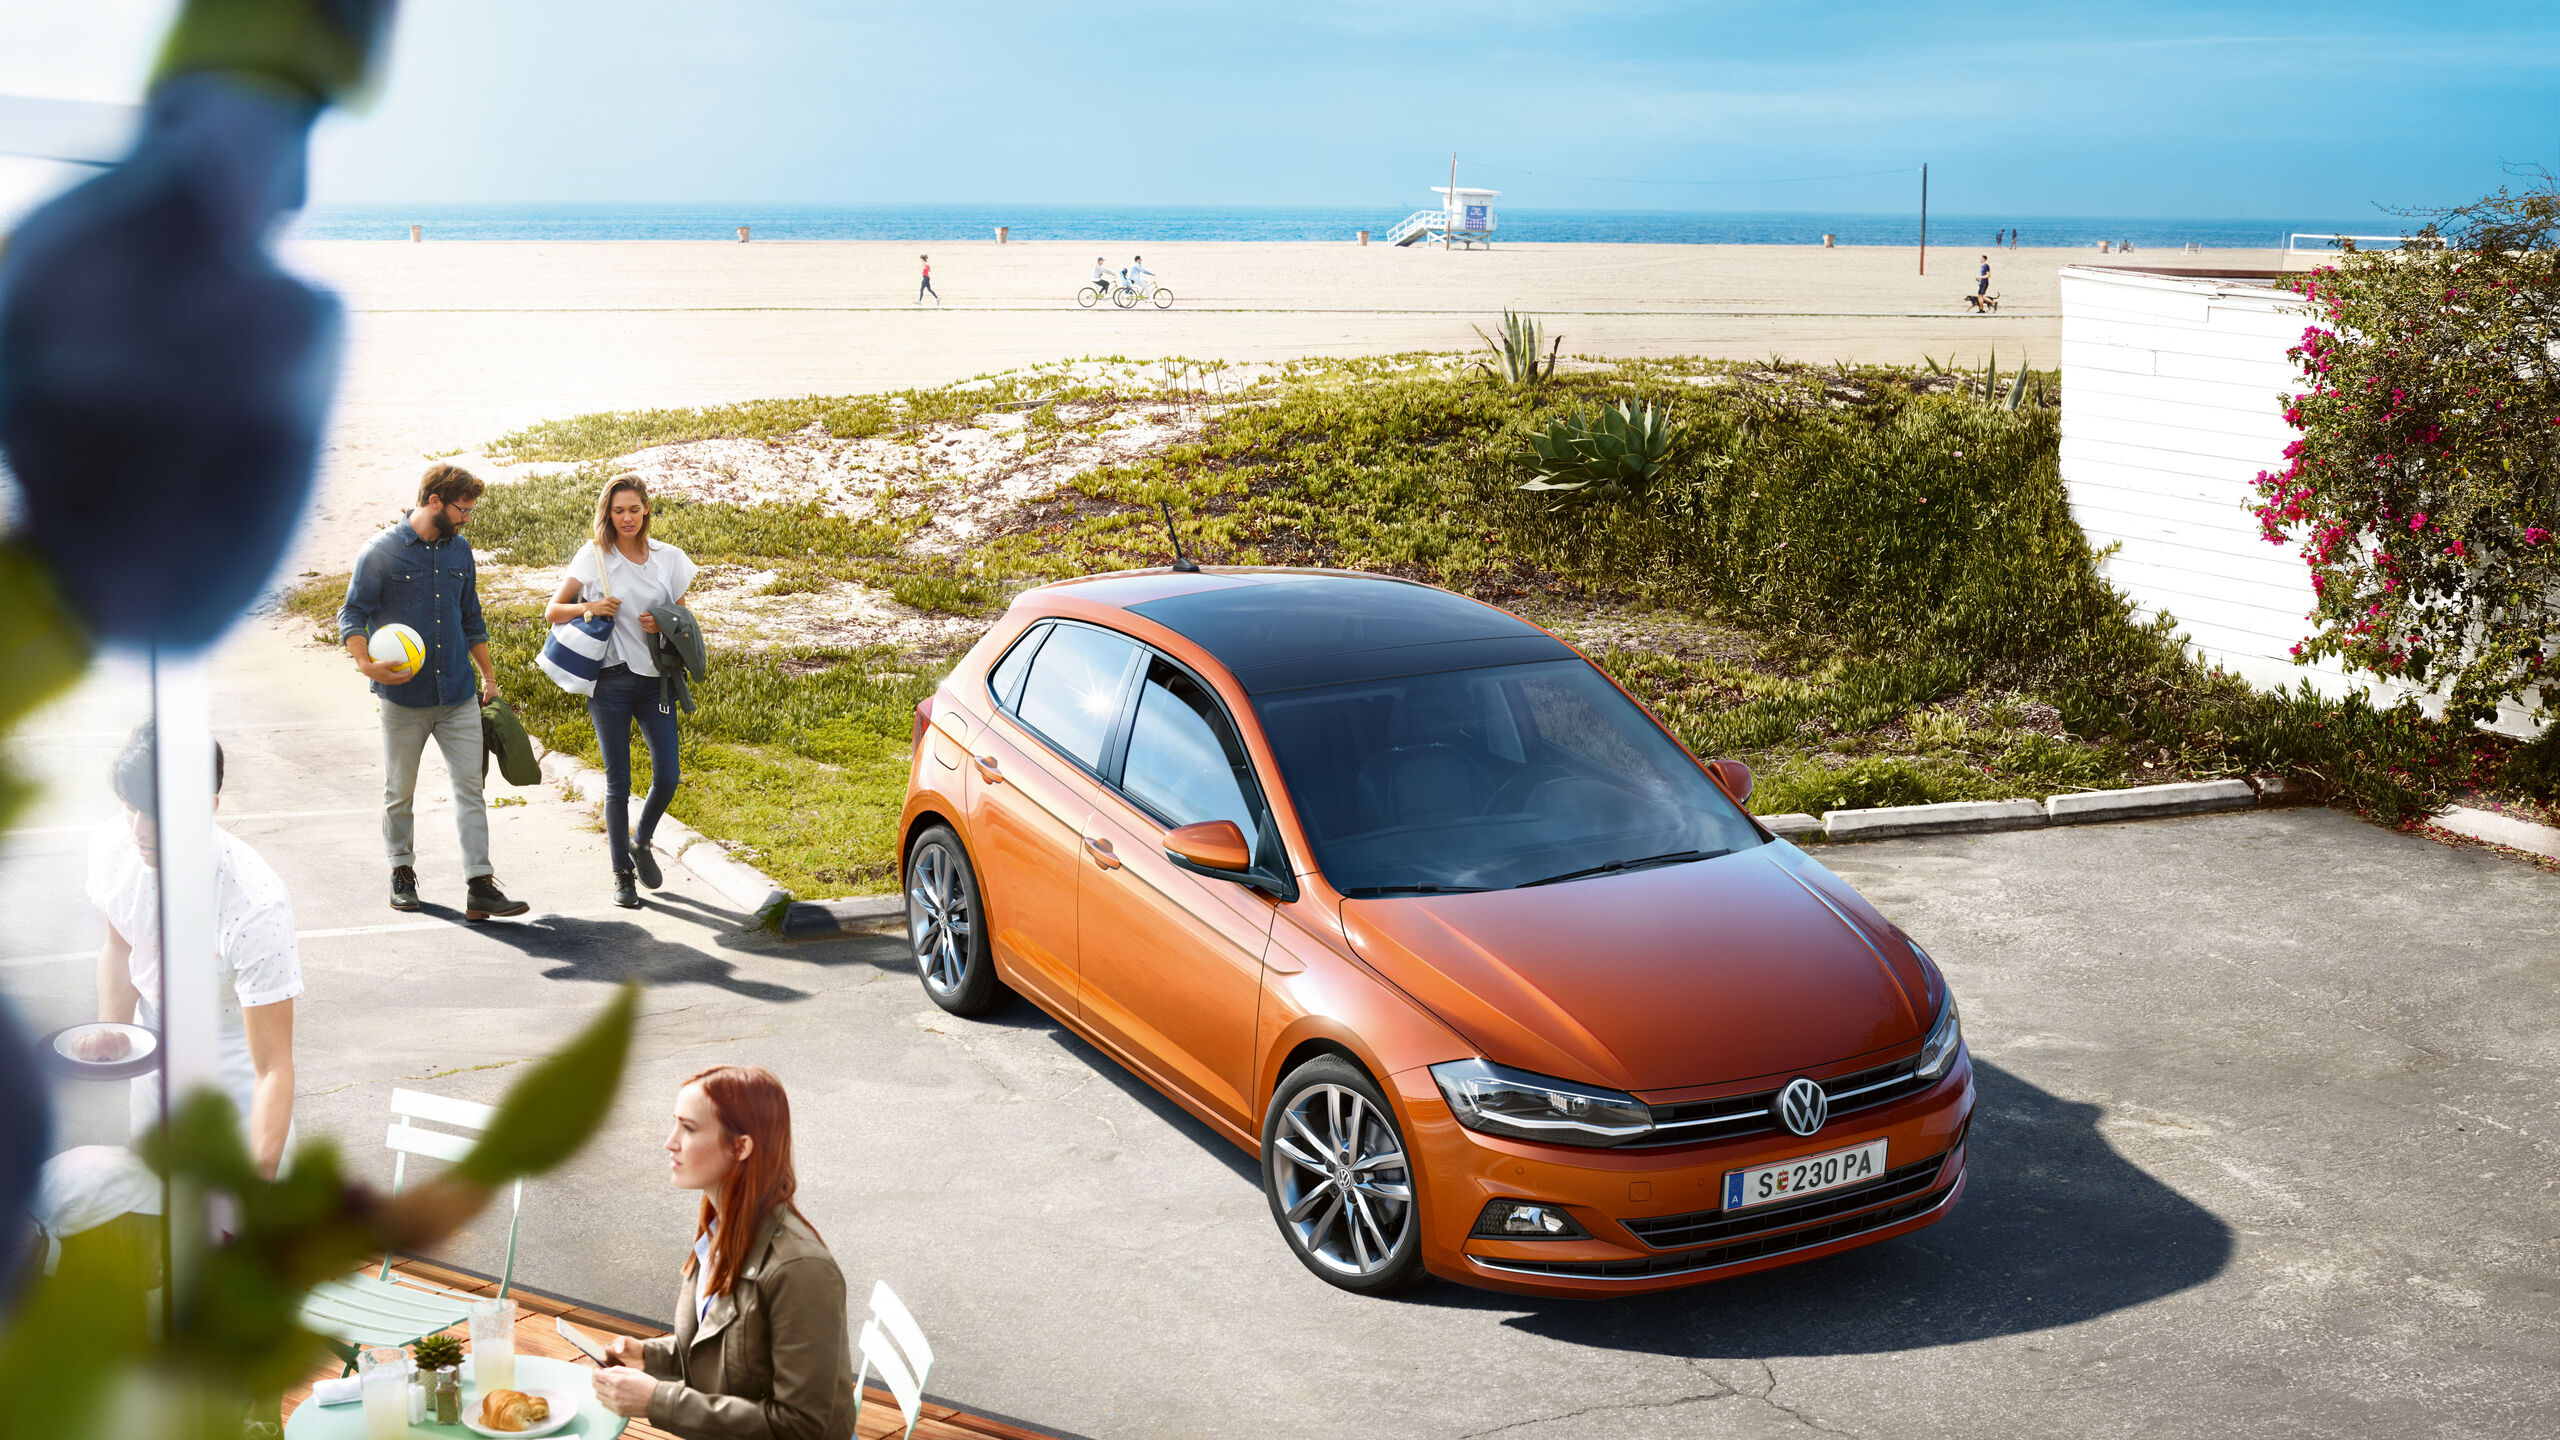 vw volkswagen polo orange aussen